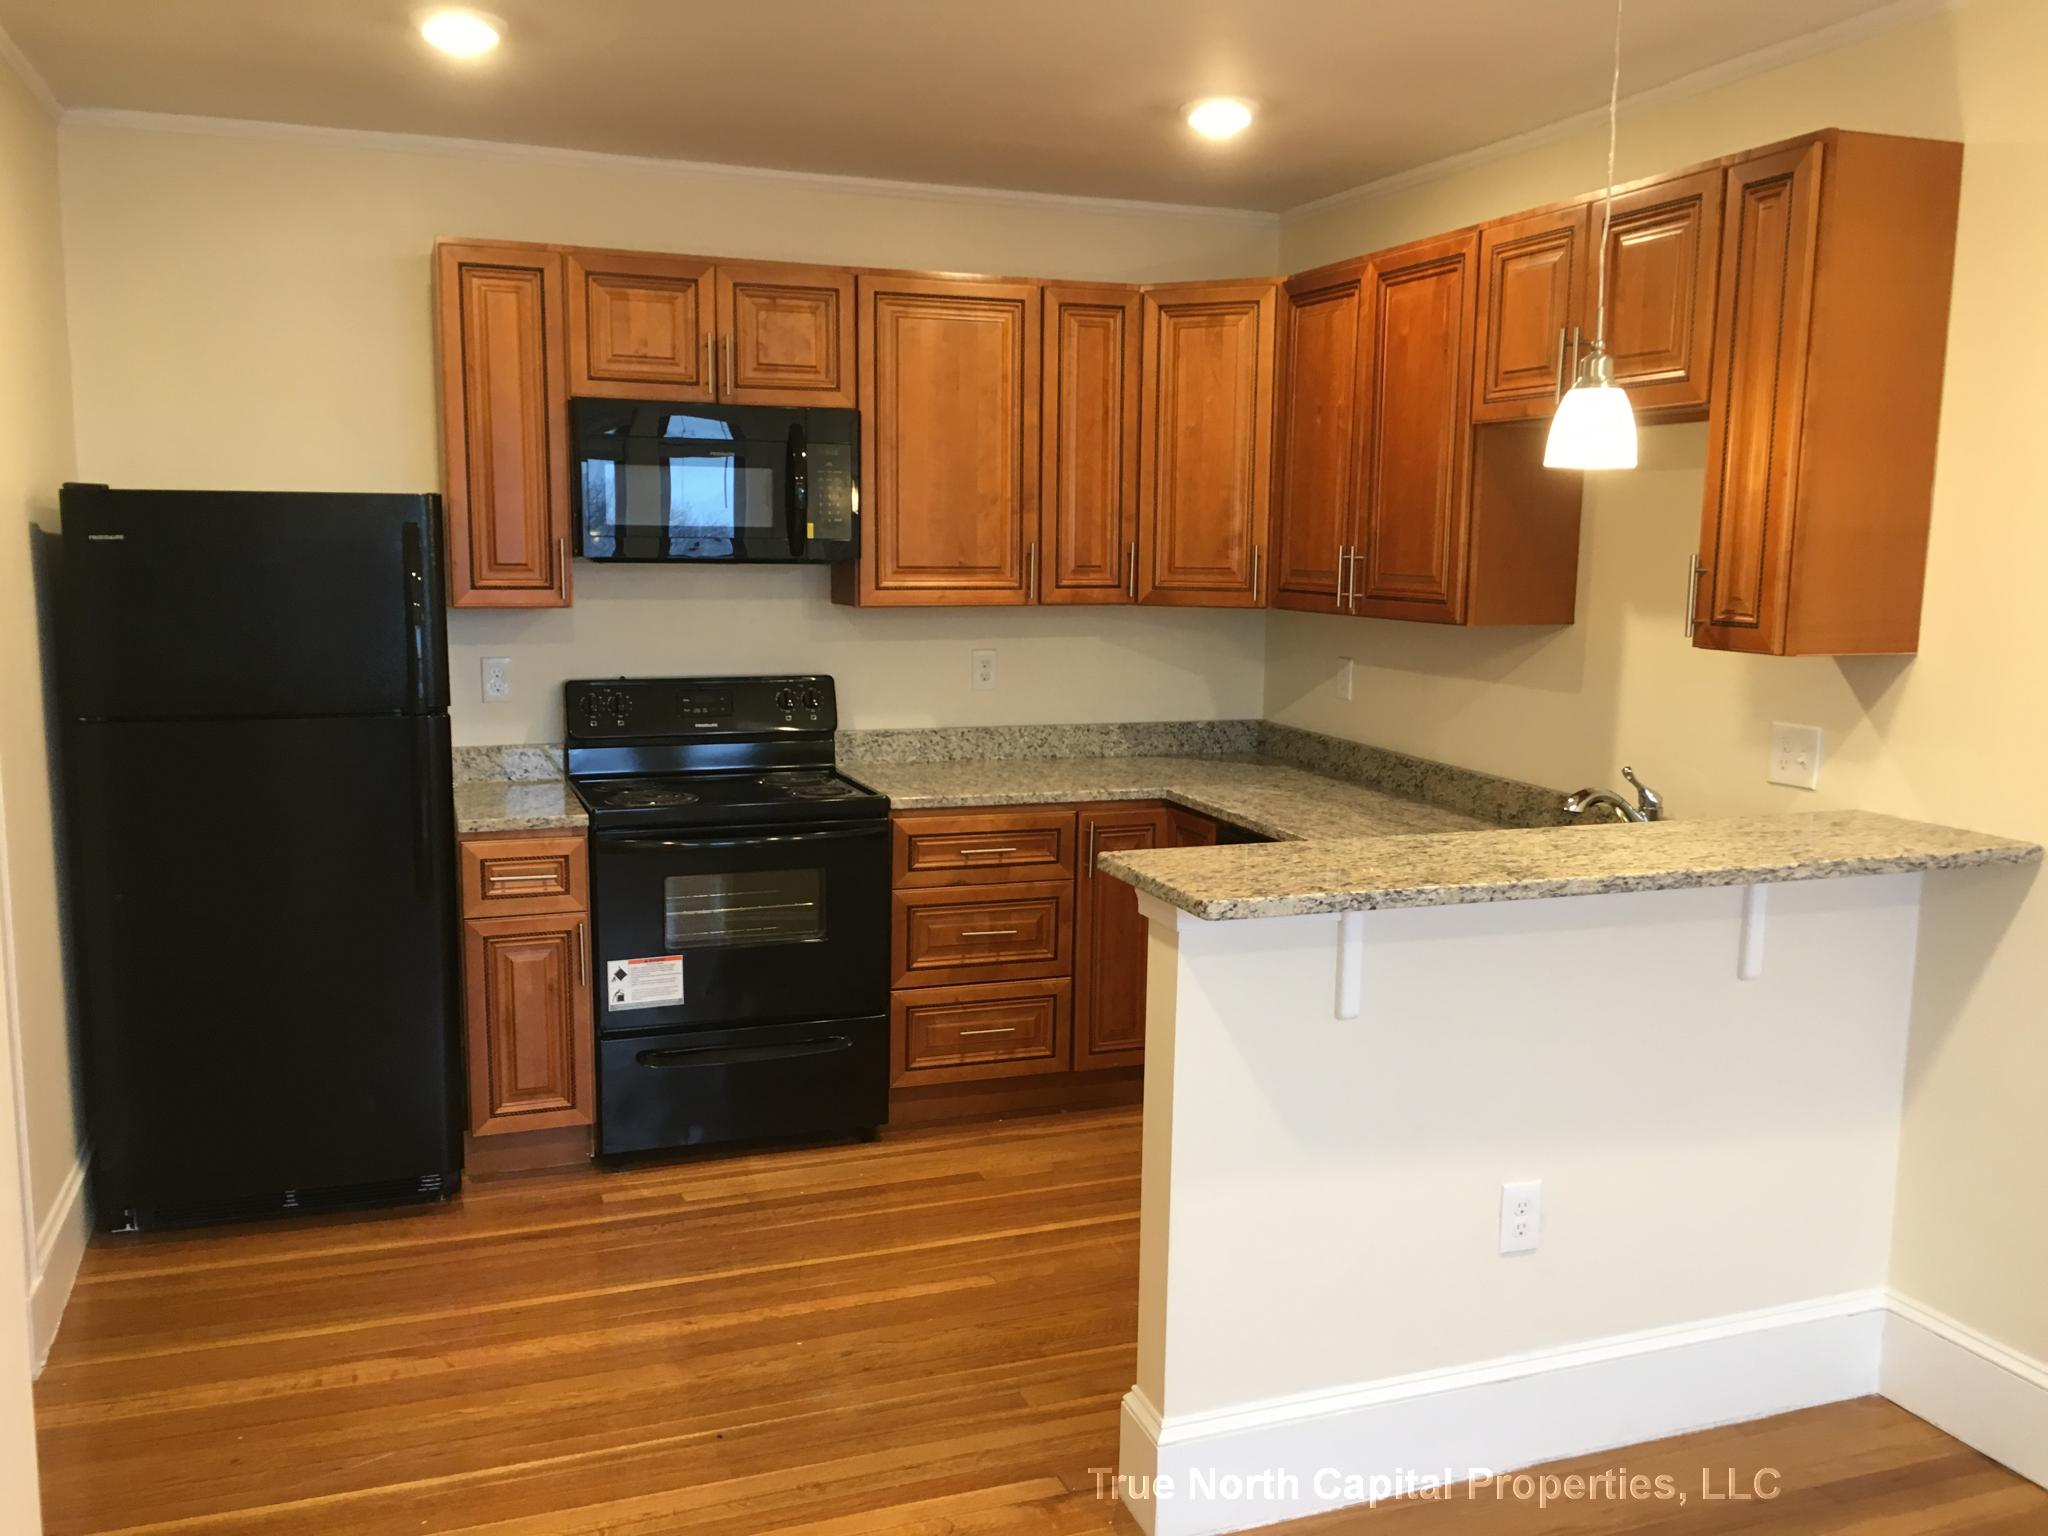 2 Beds, 1 Bath apartment in Somerville for $2,445